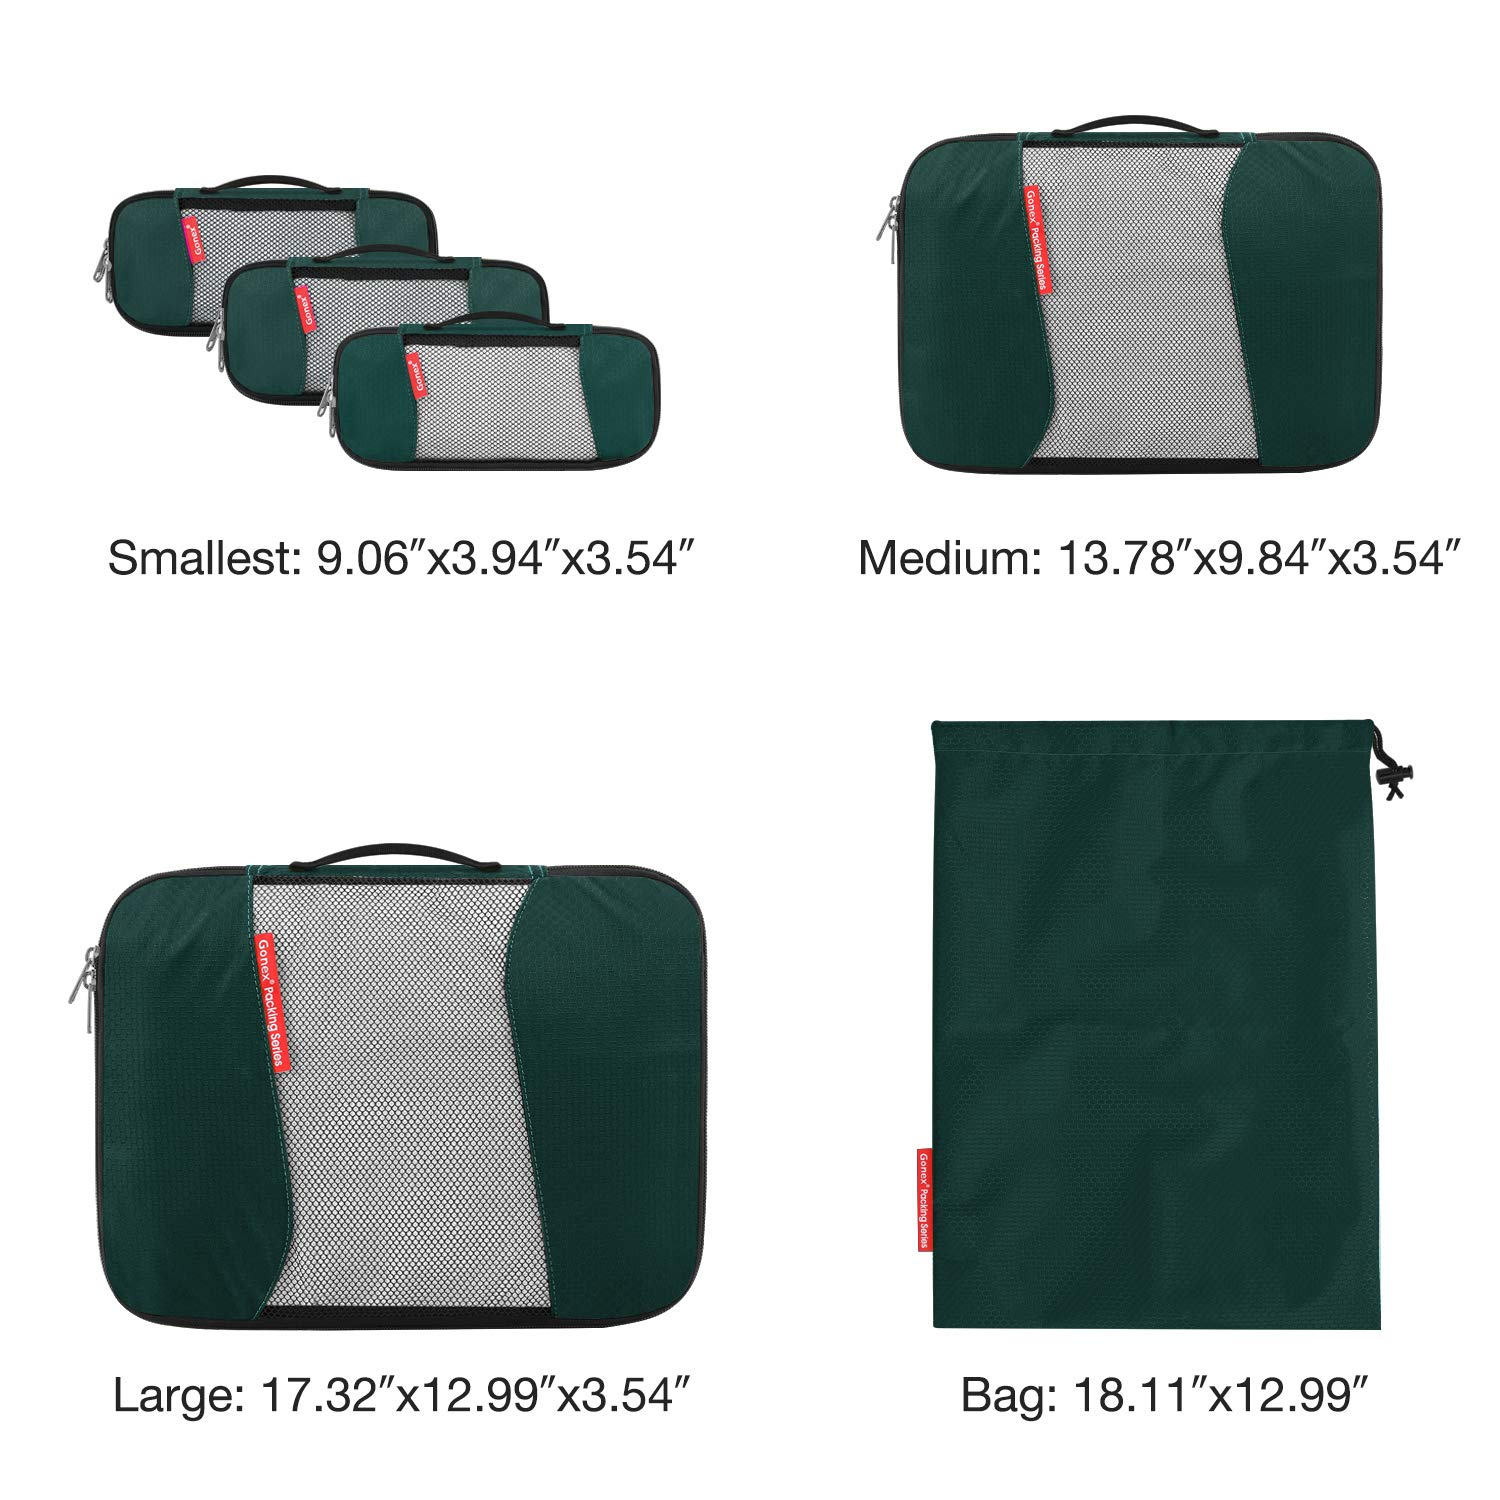 Travel Packing Cubes Gonex Luggage Organizers Different Set